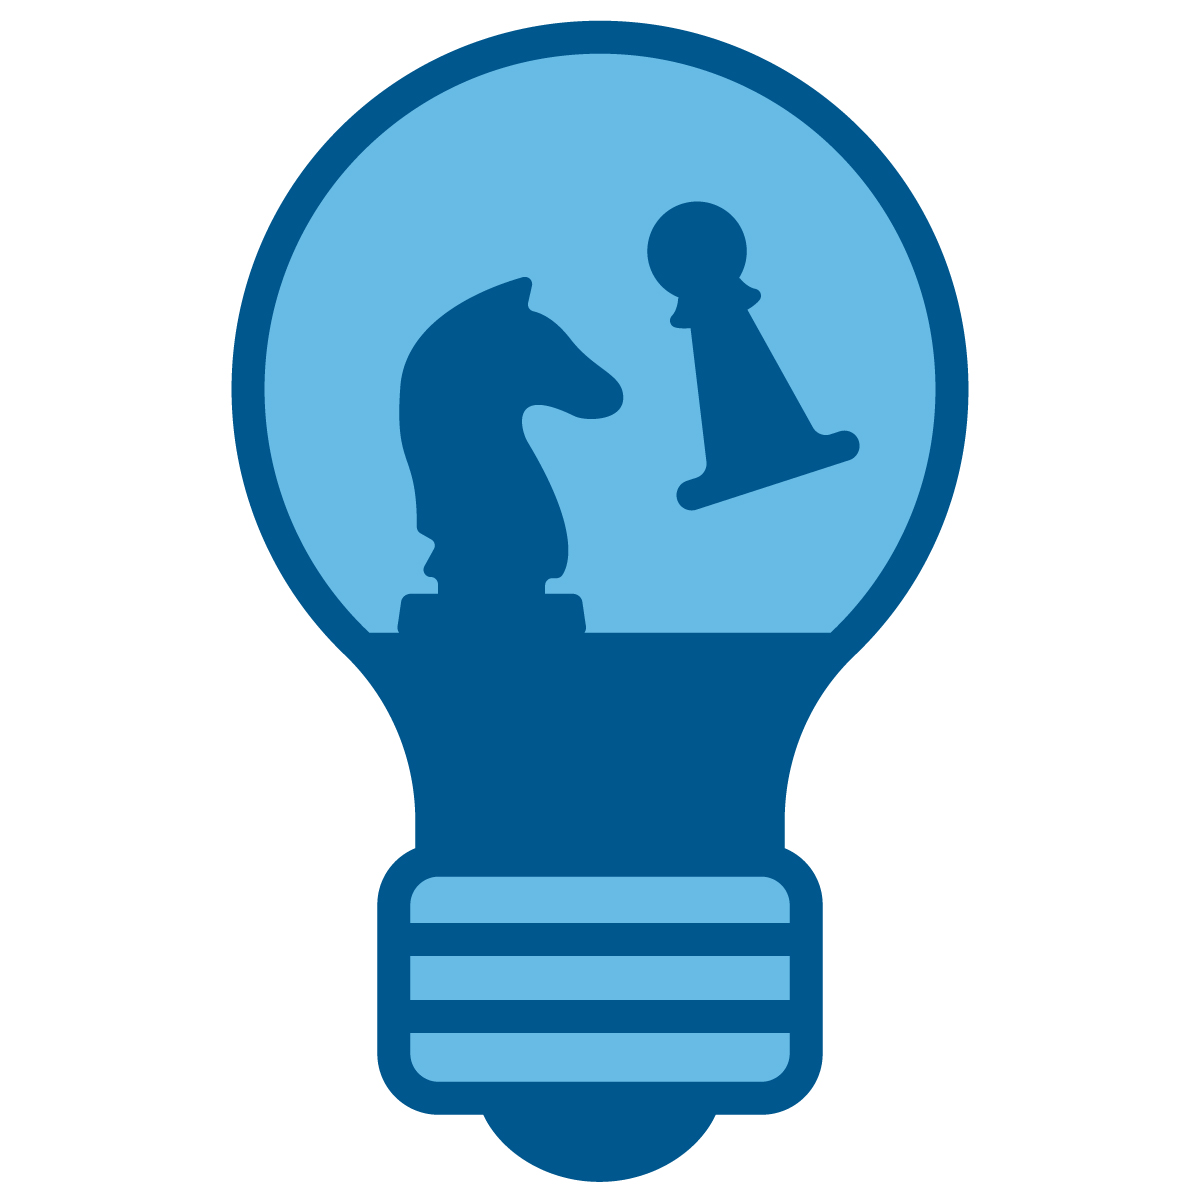 A lightbulb icon showing ideas being developed in stage 1